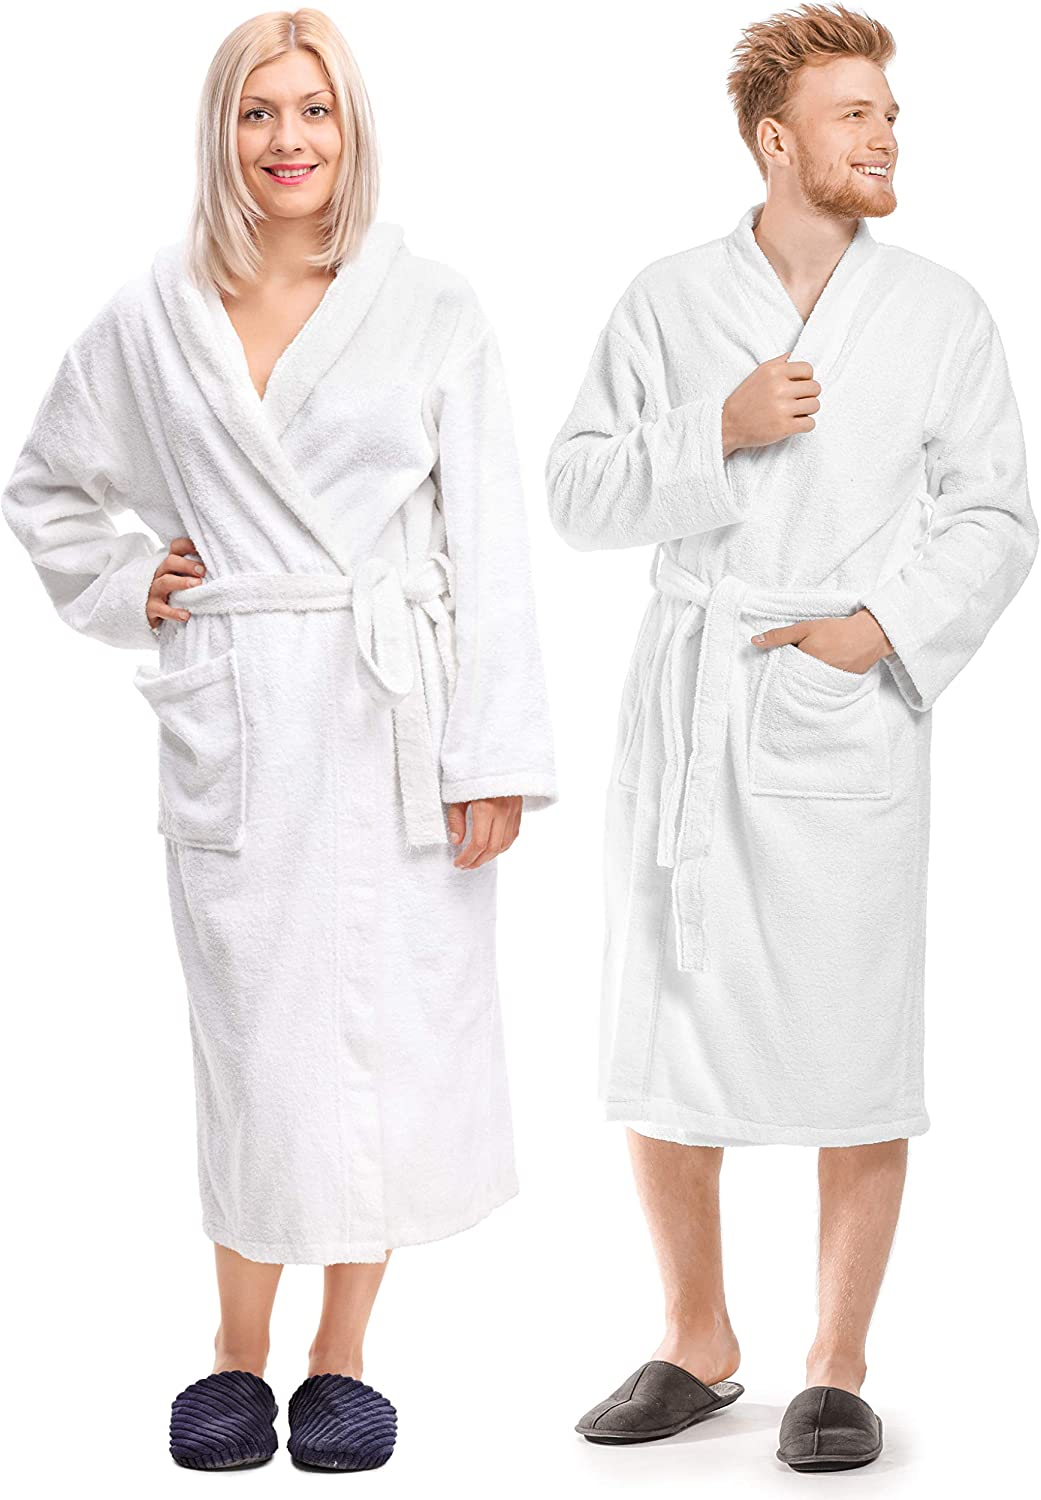 Luxury Bathrobe Towel, Spa Robe Combed Terry Cotton Organic Cloth for Men Women, Cotton Lightweight, Unisex White, Large